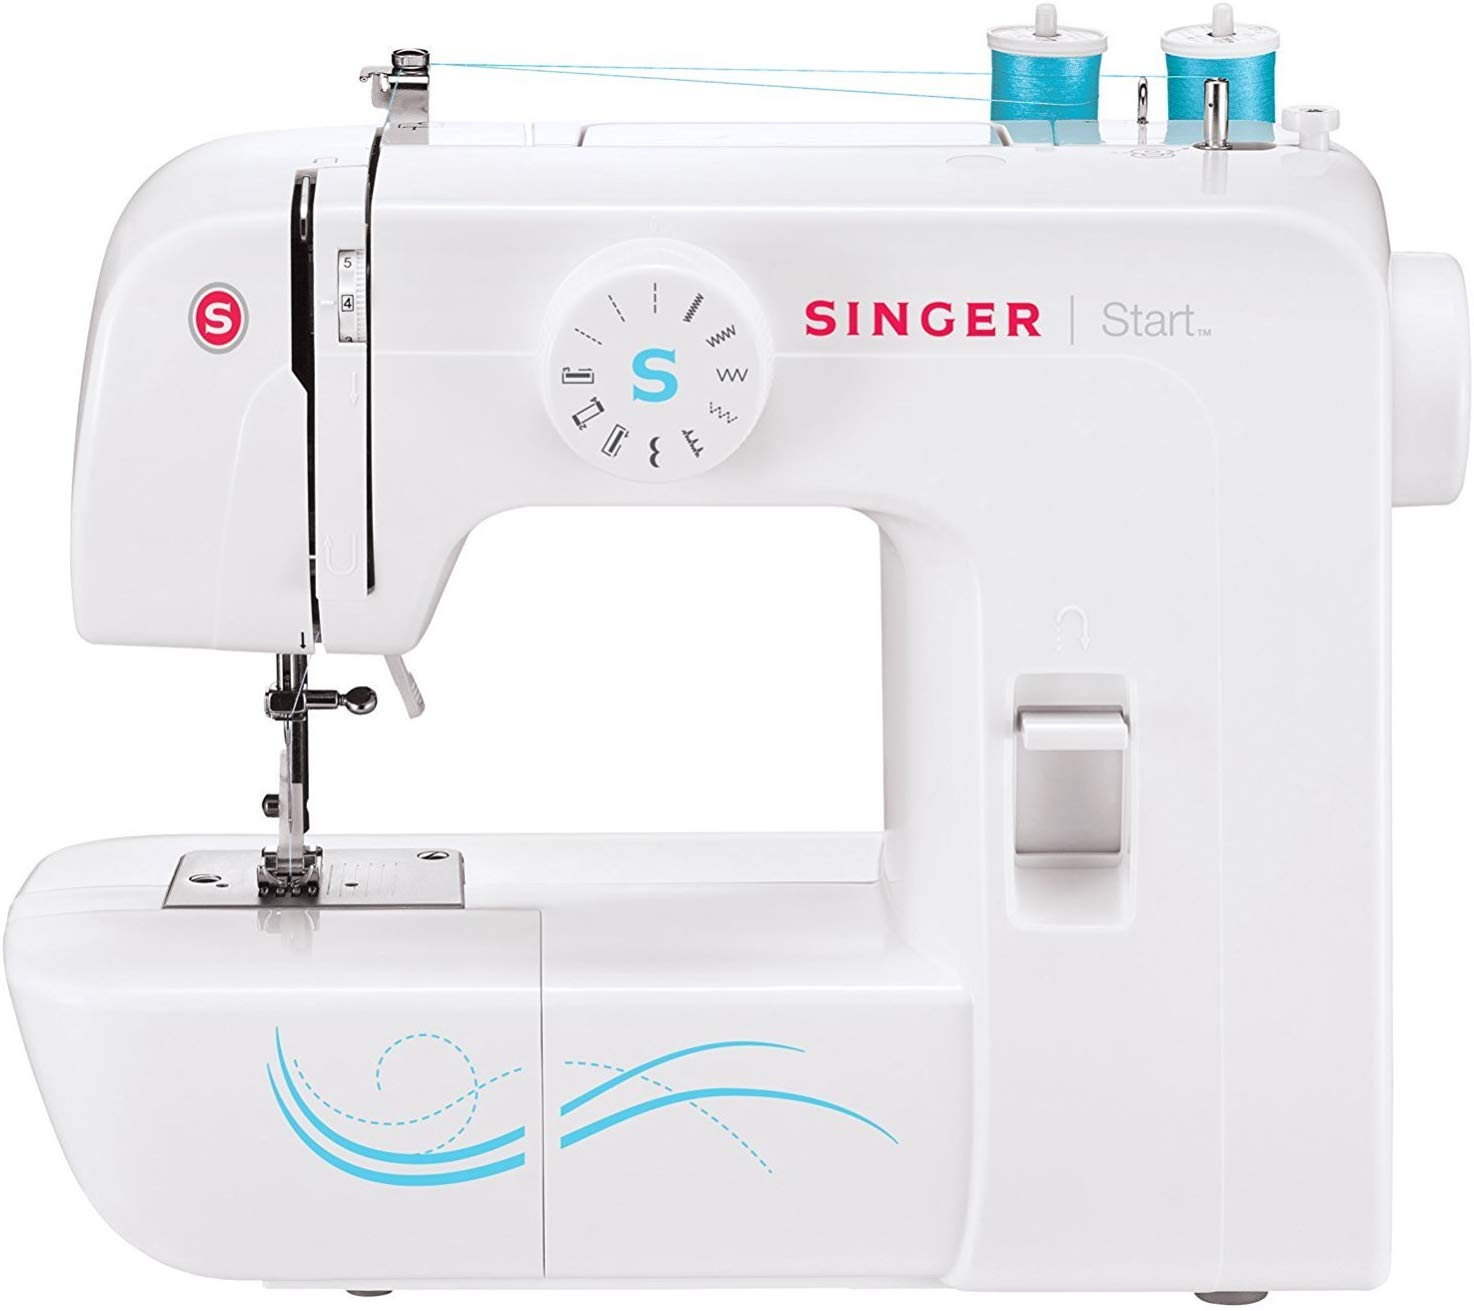 Singer Start 1304 Sewing Machine - Heavy Duty Sewing Machines